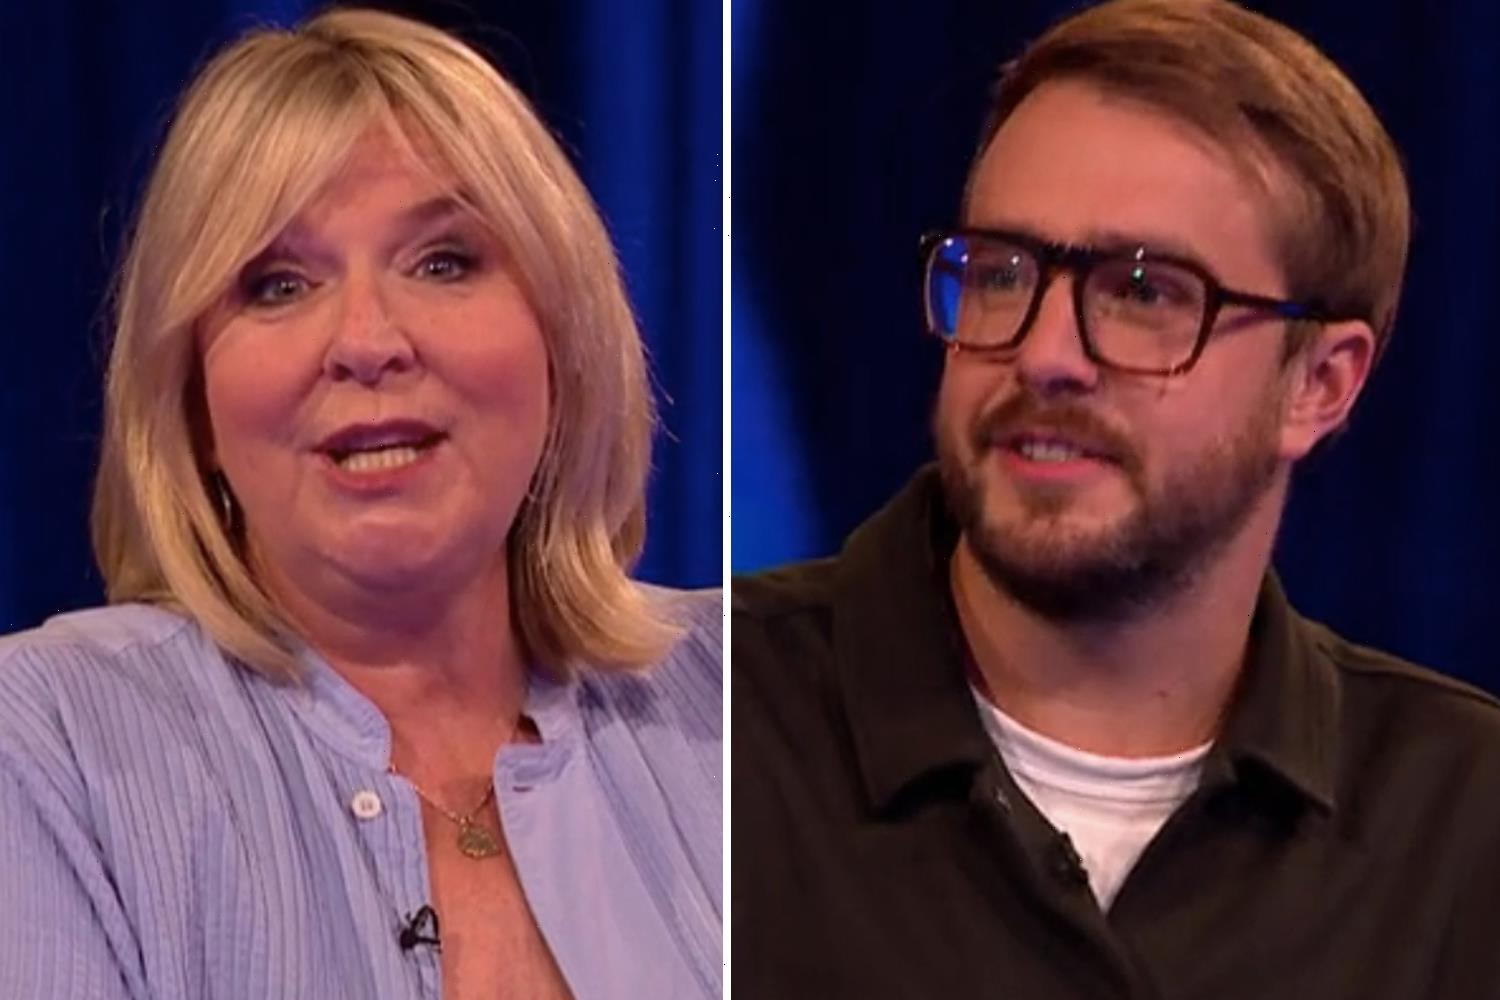 Fern Britton snaps 'don't patronise me' at Love Island's Iain Stirling as Tipping Point celeb special takes tense turn